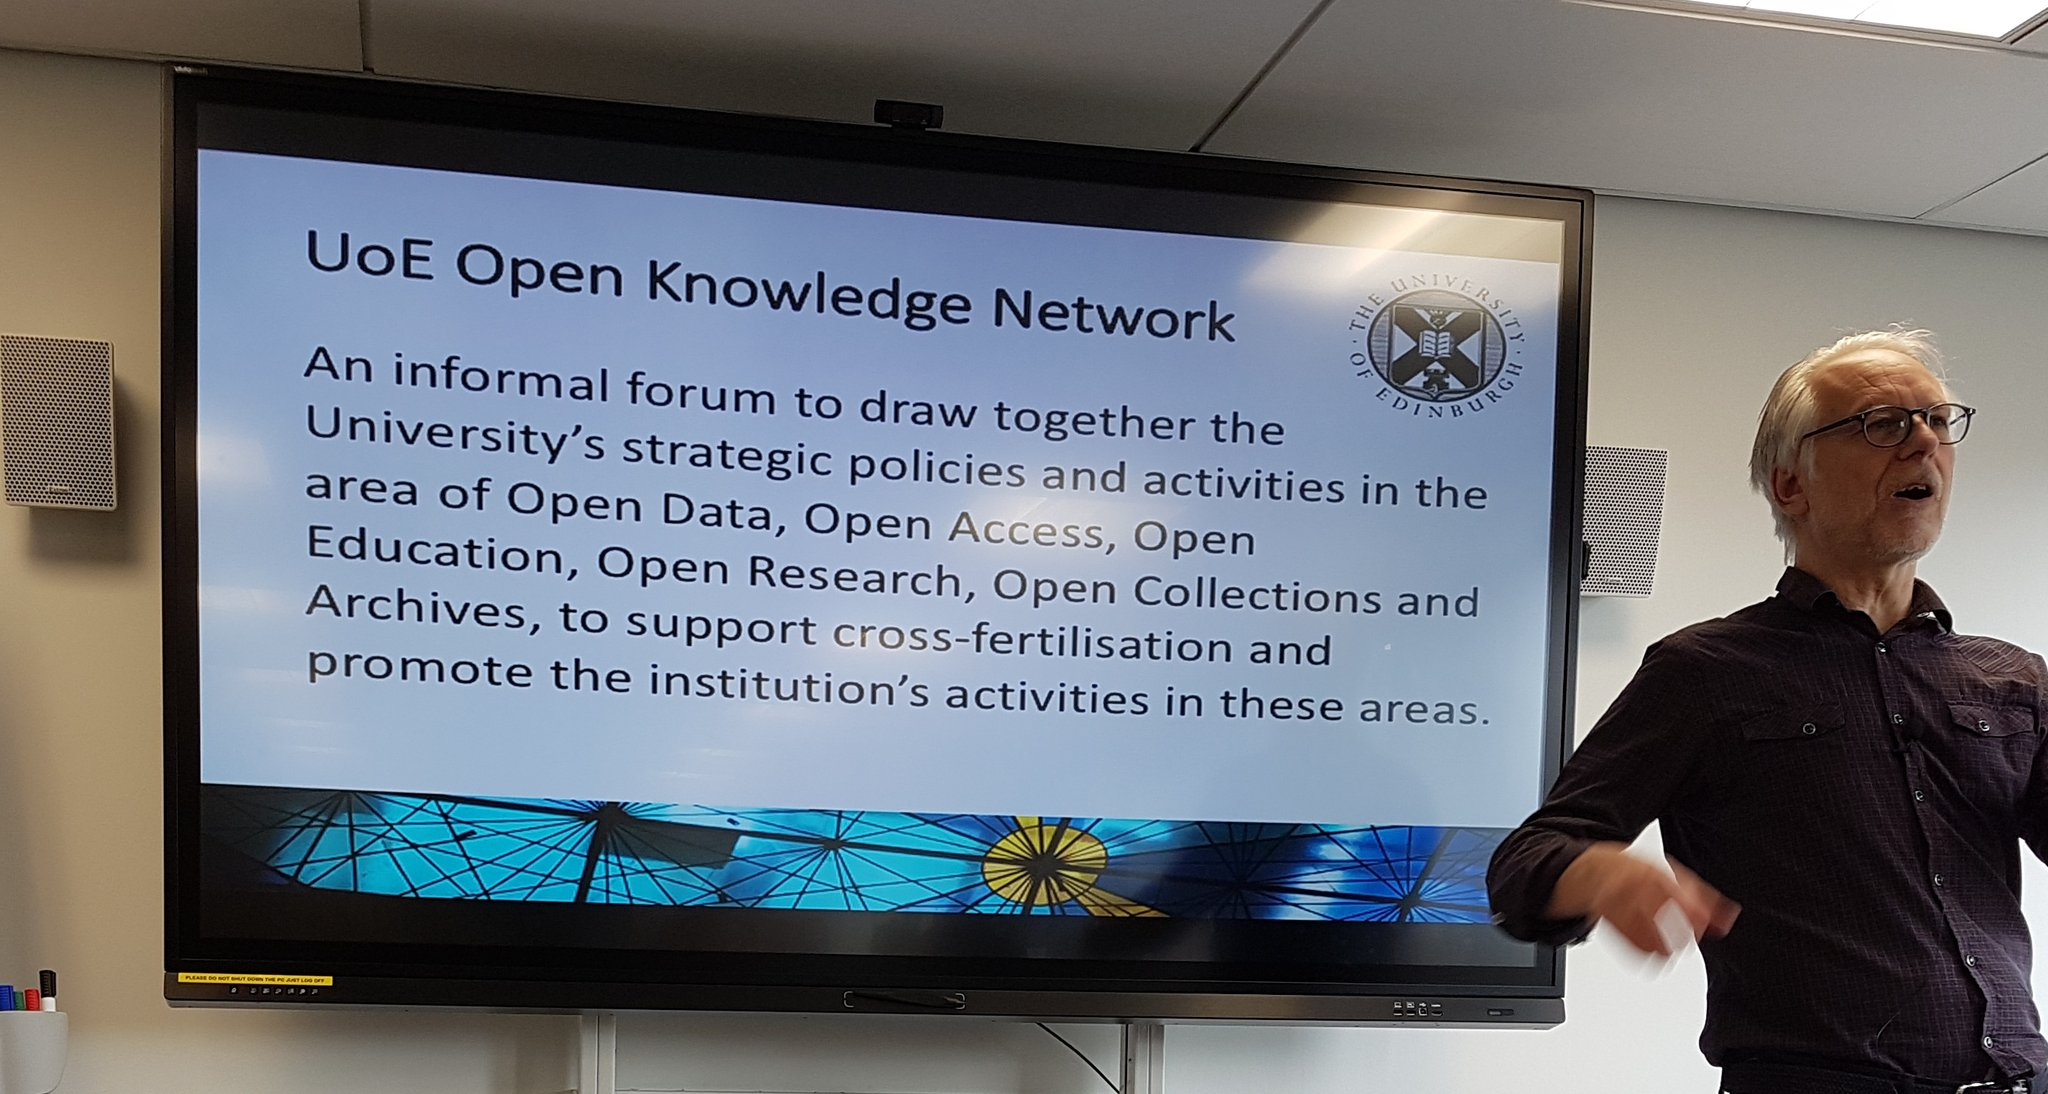 Ewan Klein kicking off today's #OpenKnowledge Network event #uoeOKN  To subscribe to the mailing list u can click on https://t.co/3qke7m1rI8 https://t.co/afz2o0DIw2